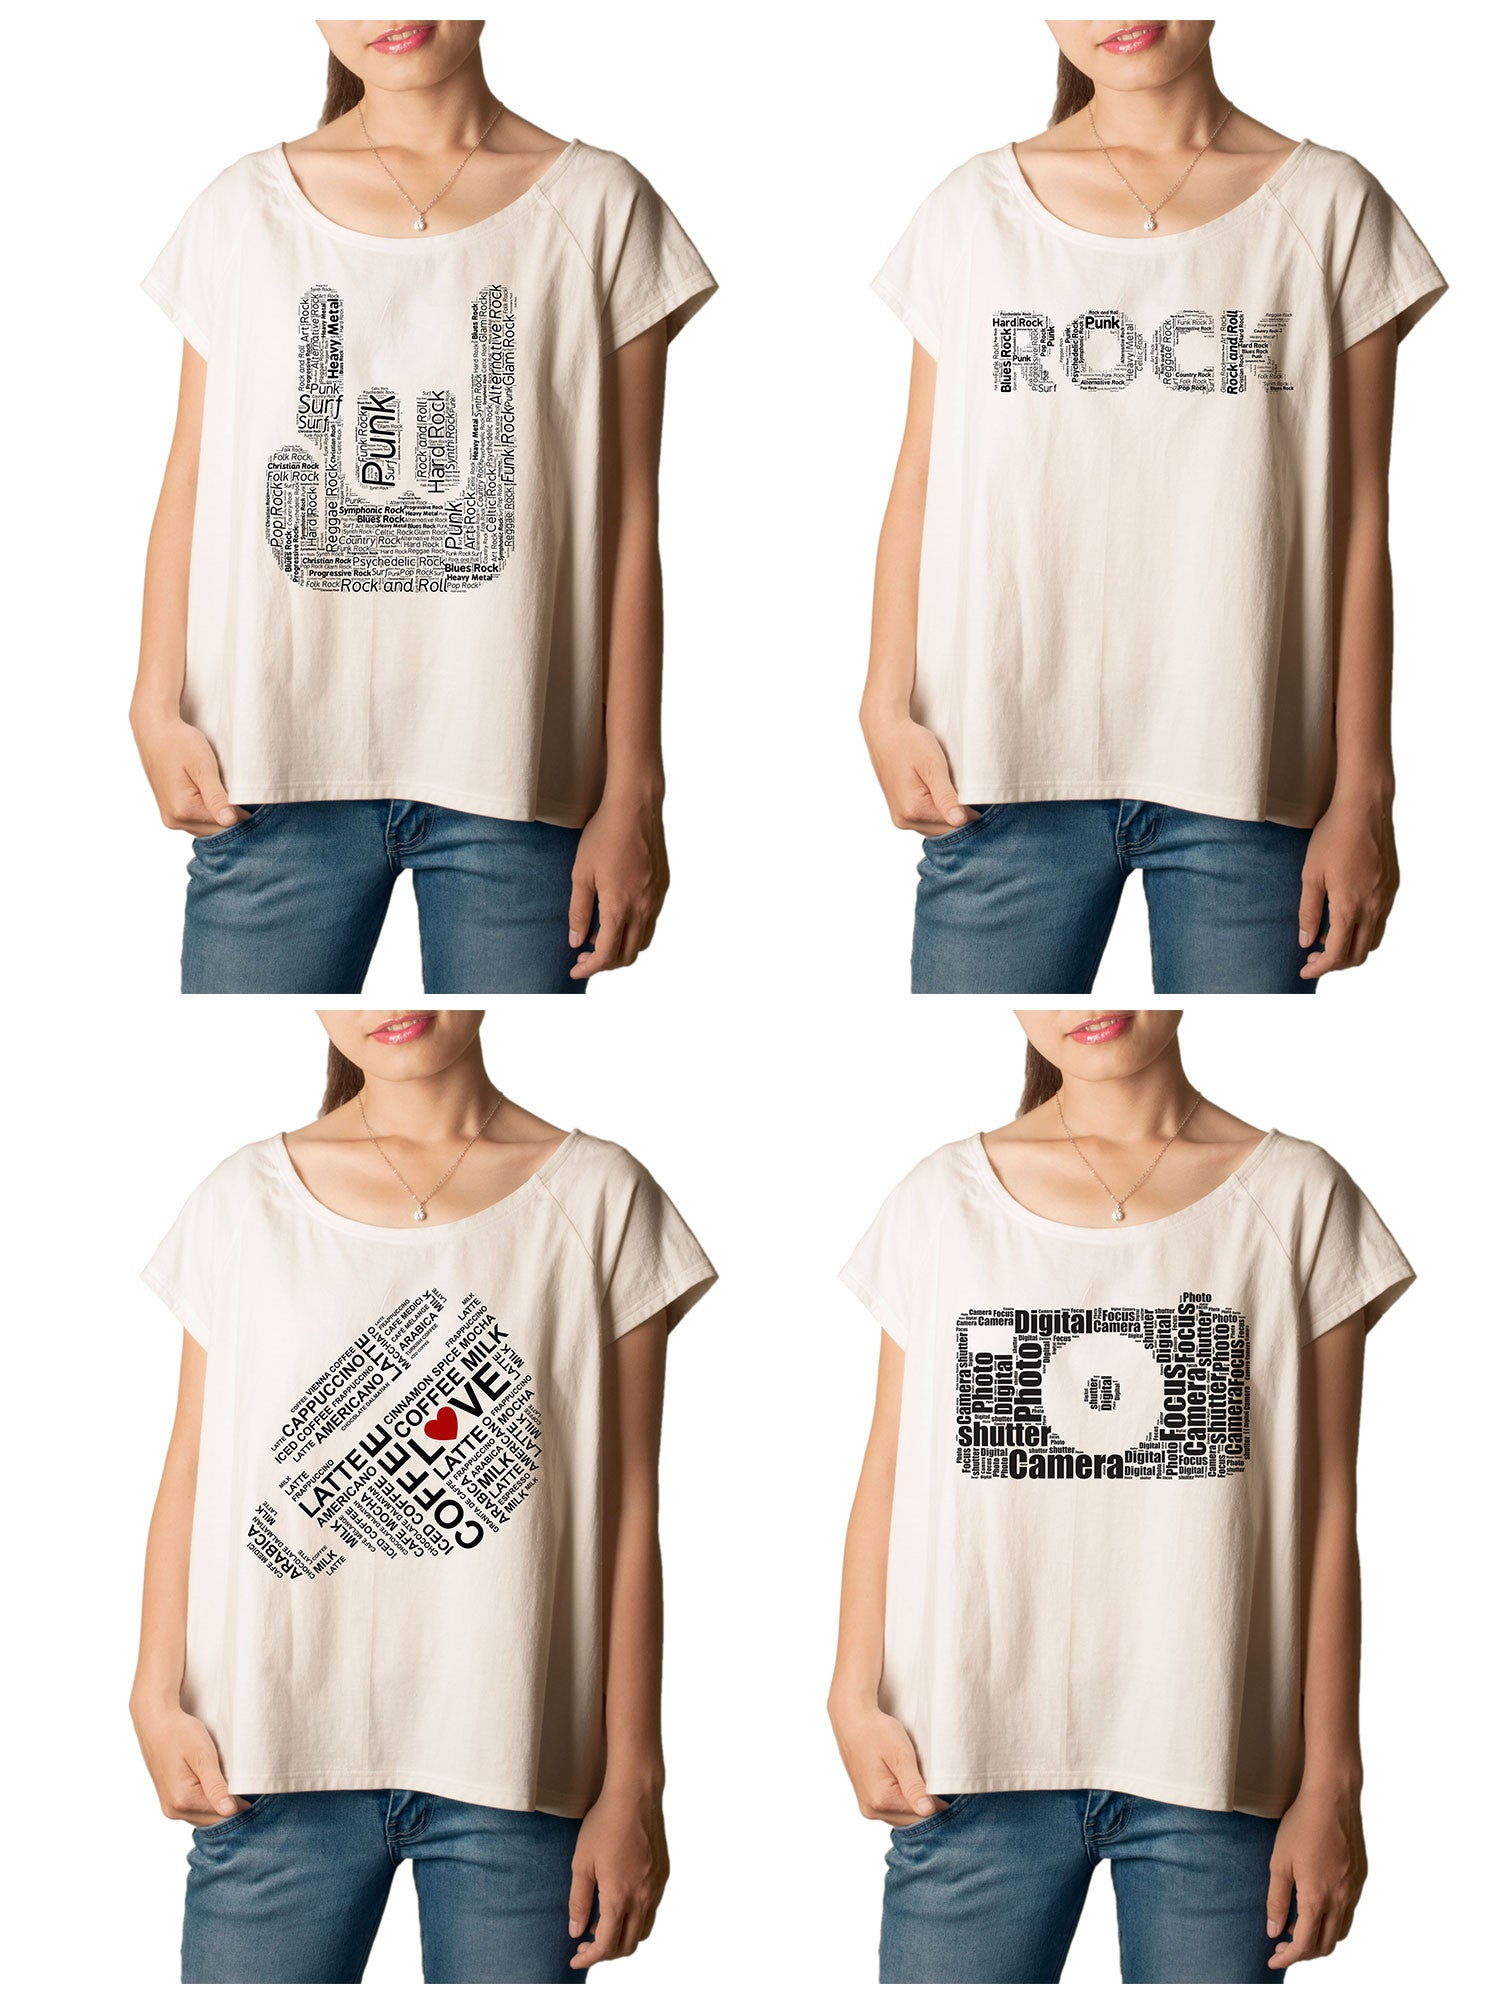 Women's typography Printed cotton T-shirt  Tee WTS_01